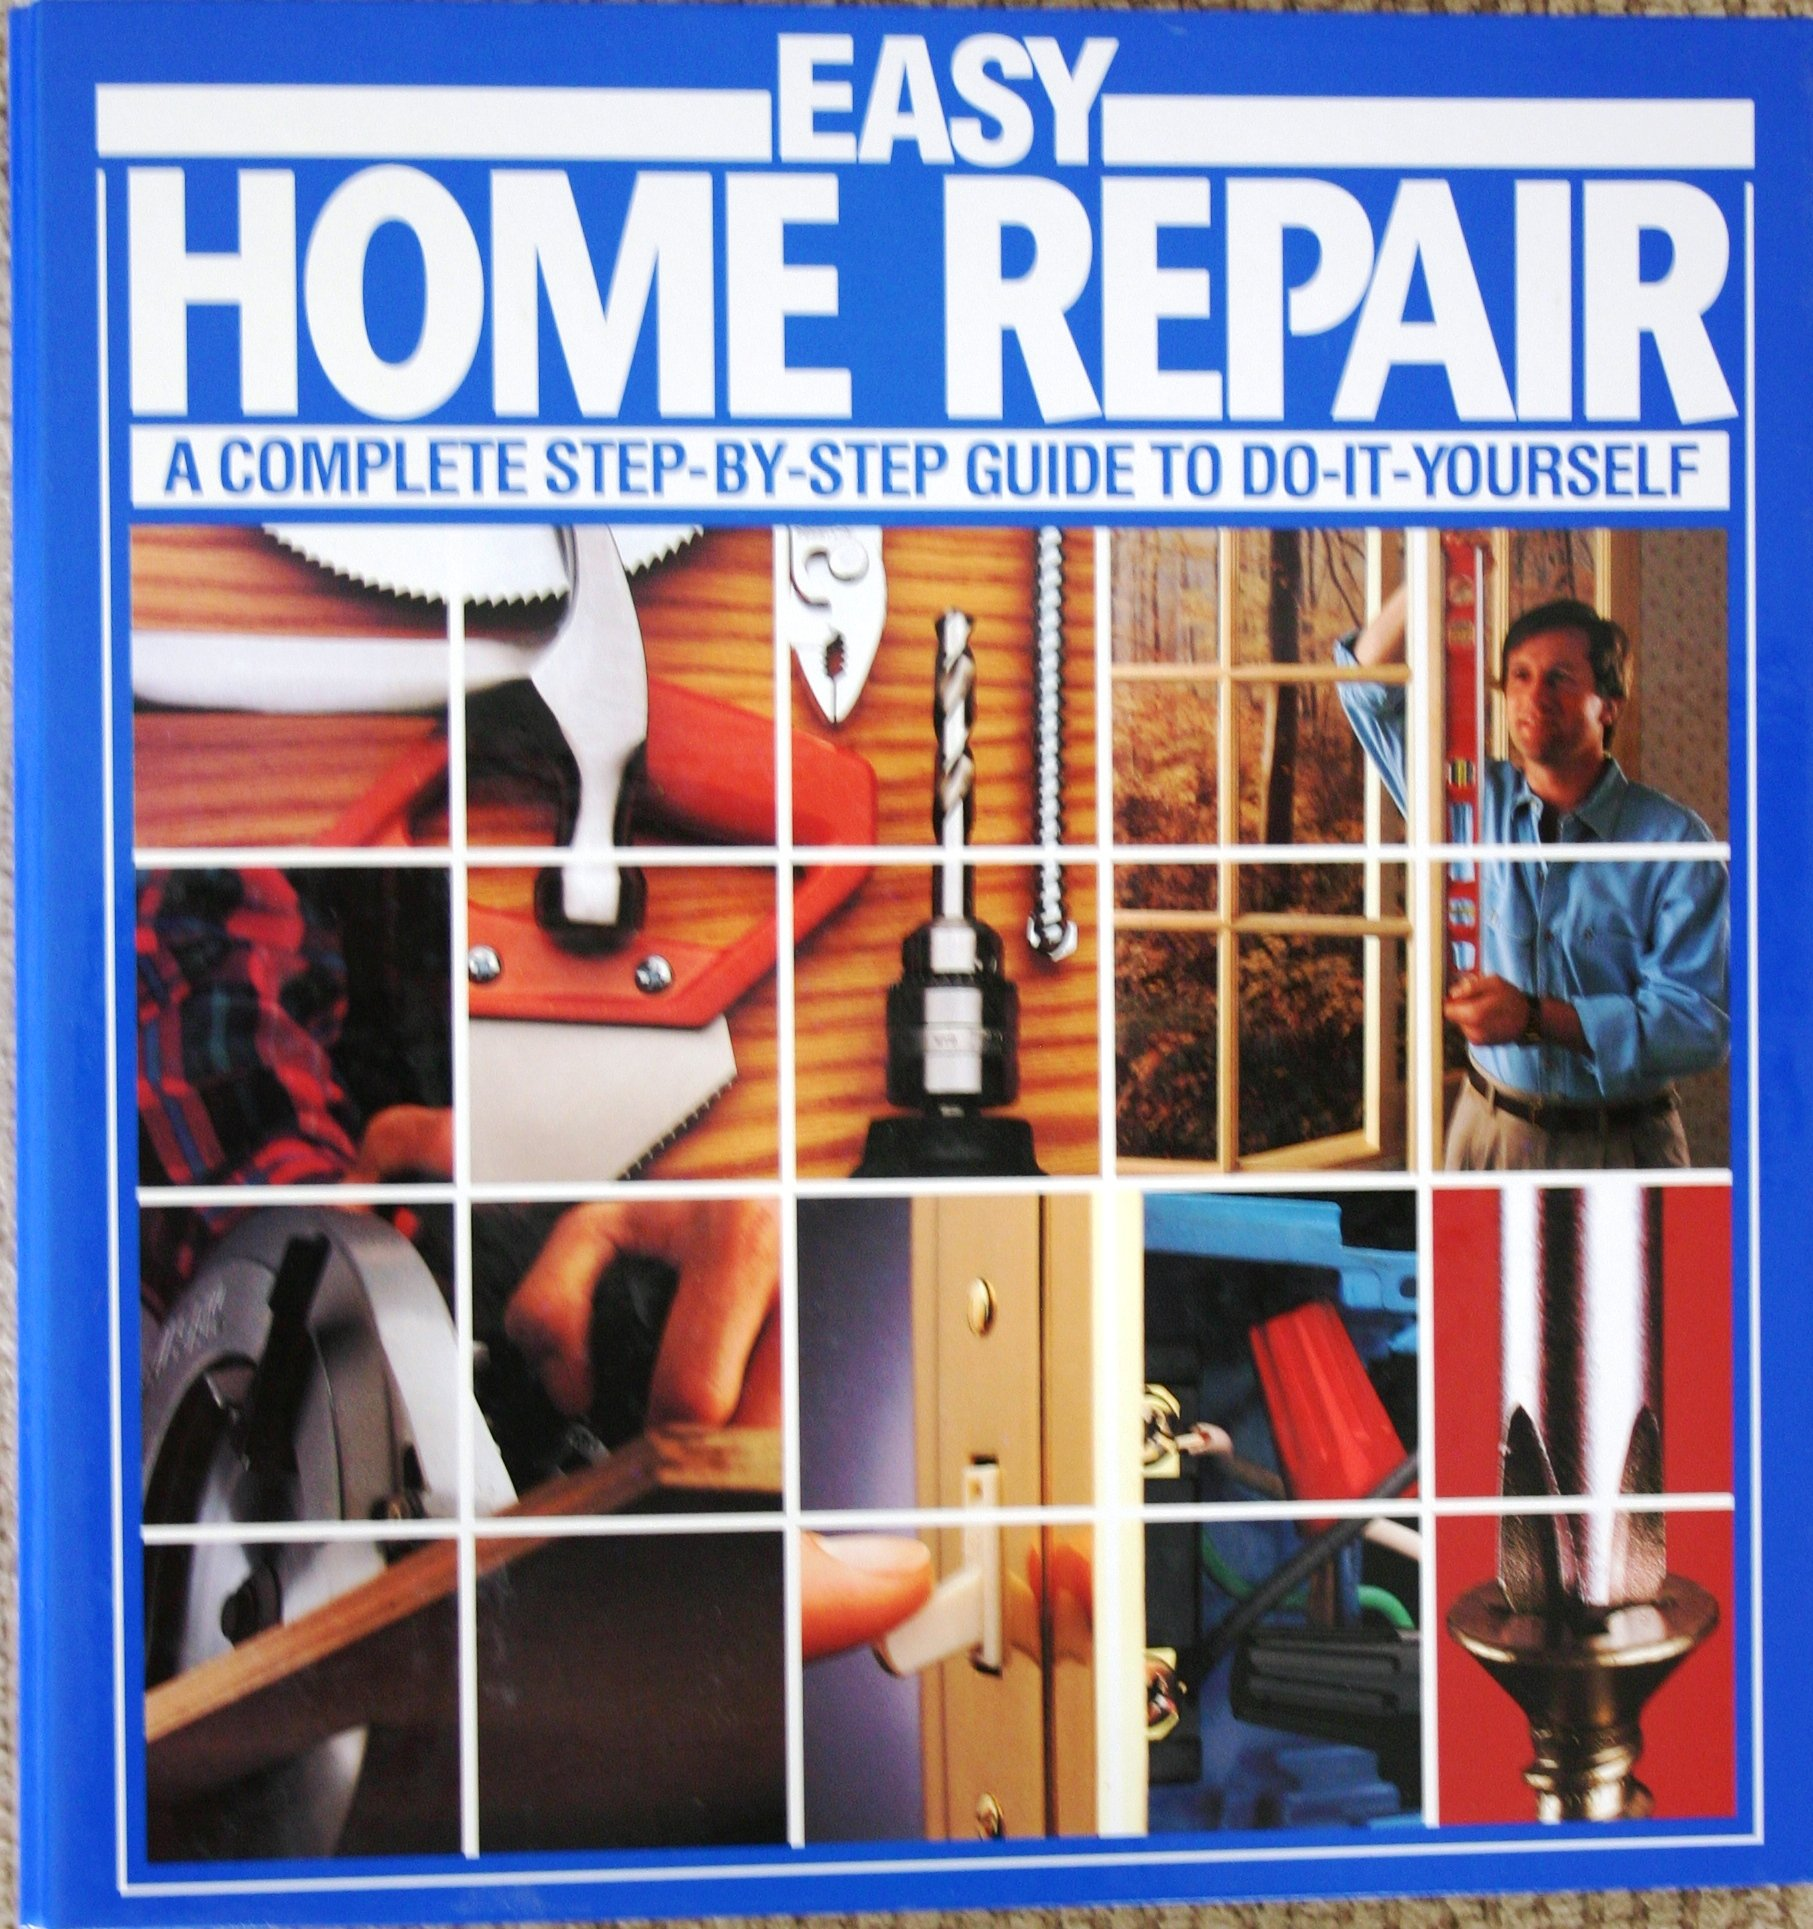 Easy home repair a complete step by step guide to do it yourself easy home repair a complete step by step guide to do it yourself bob anderson amazon books solutioingenieria